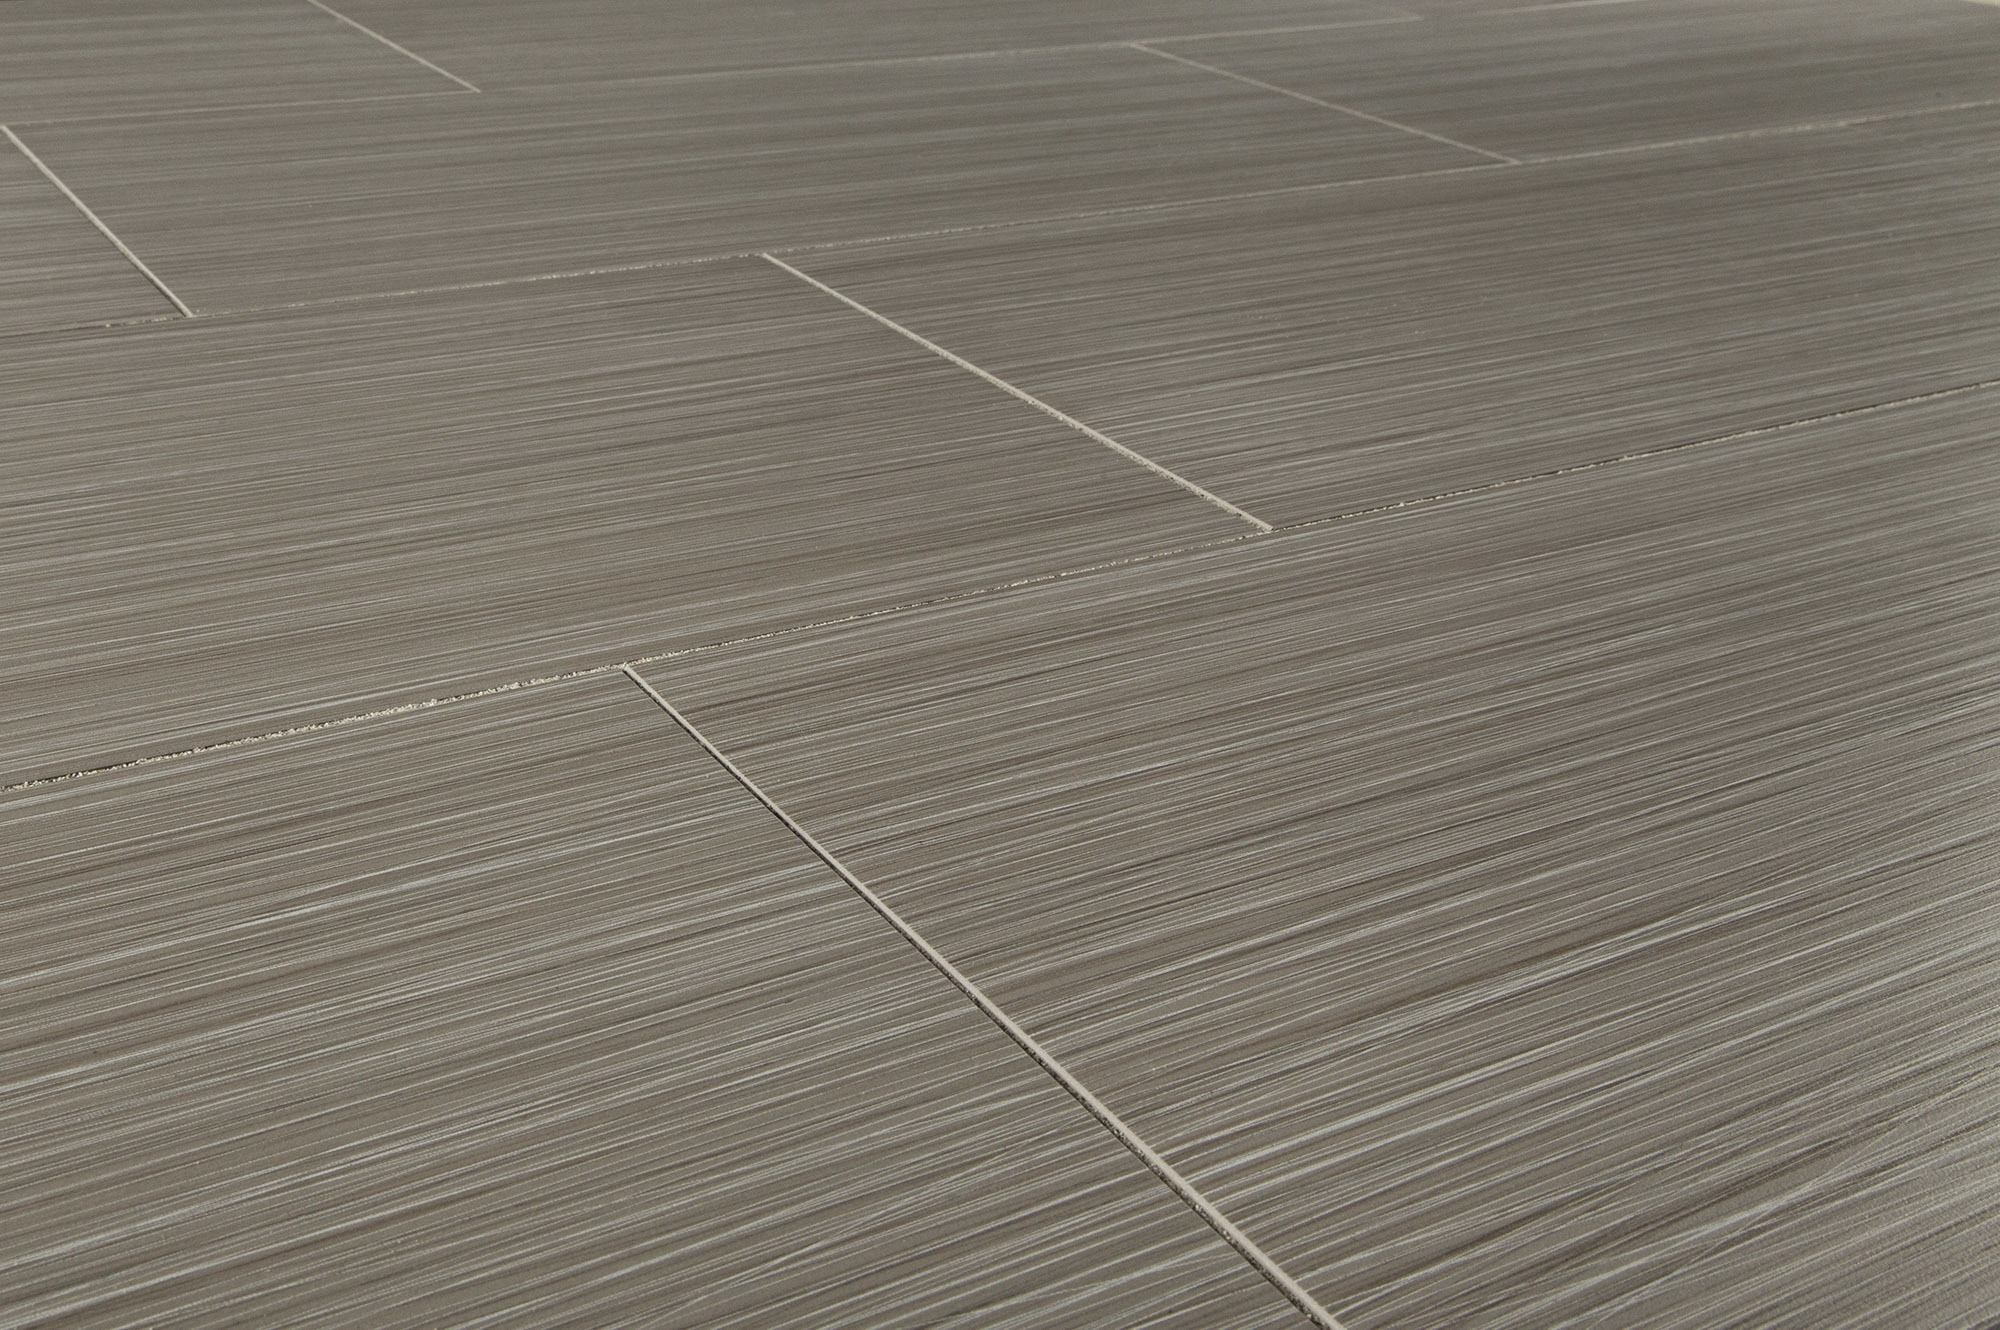 Takla porcelain tile starlight collection made in usa saturn similar products porcelain tile dailygadgetfo Choice Image